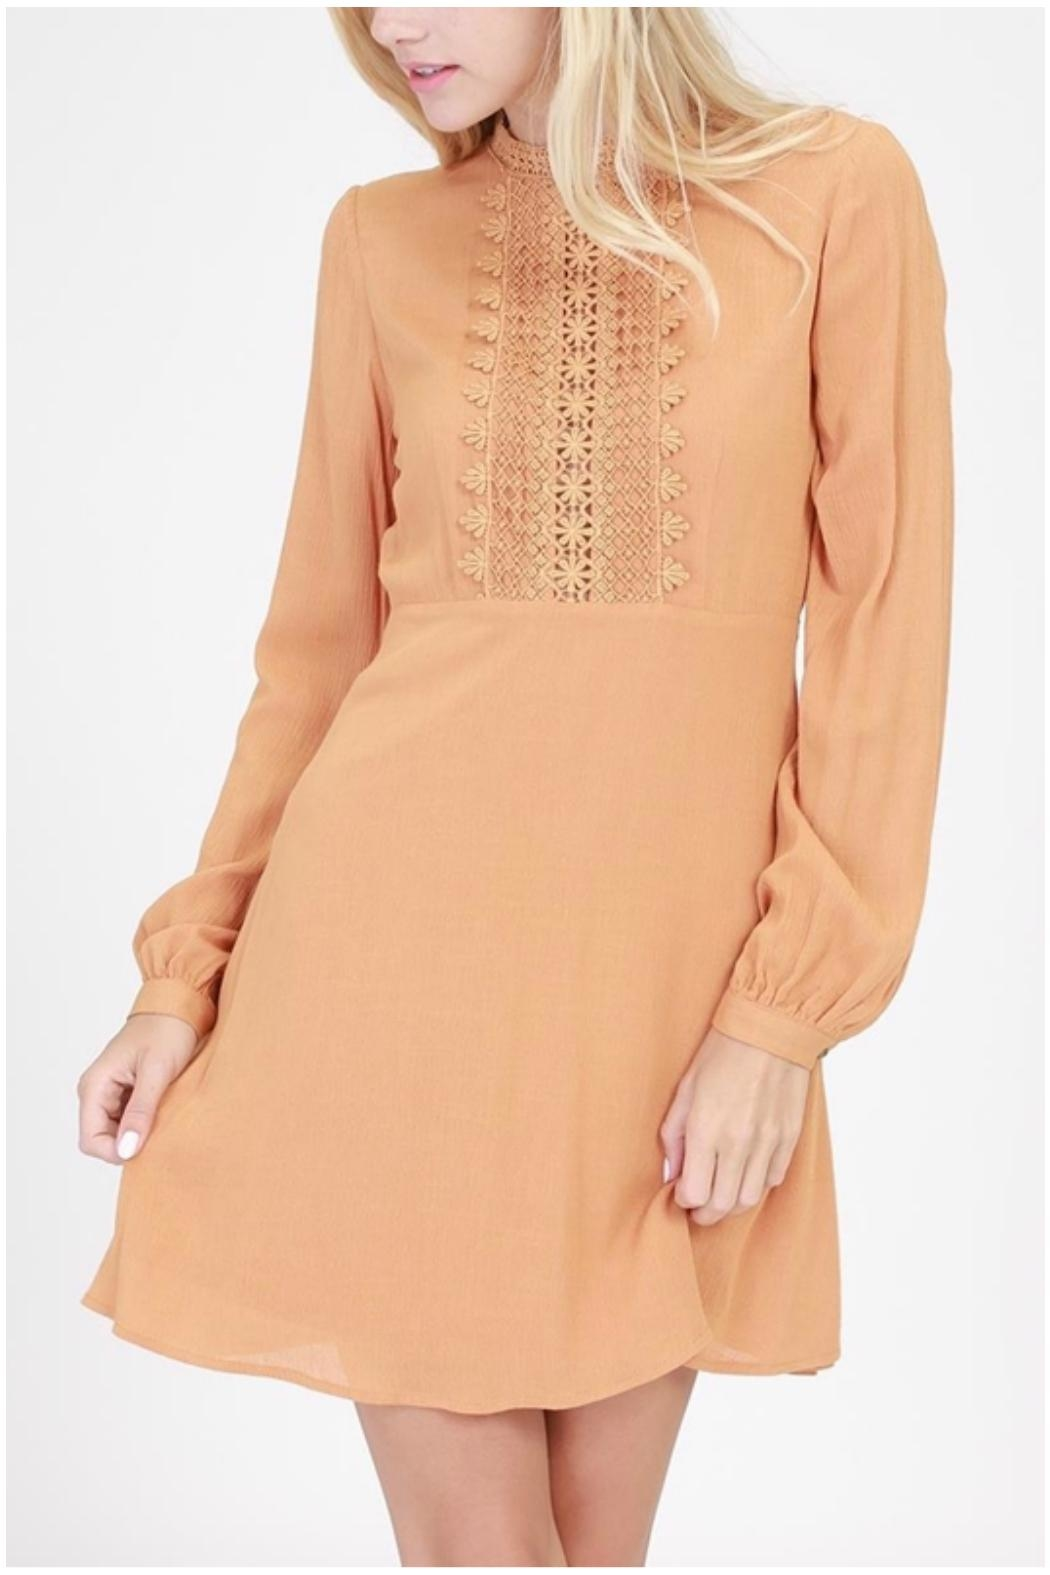 HYFVE Embroidered Frock Dress - Main Image